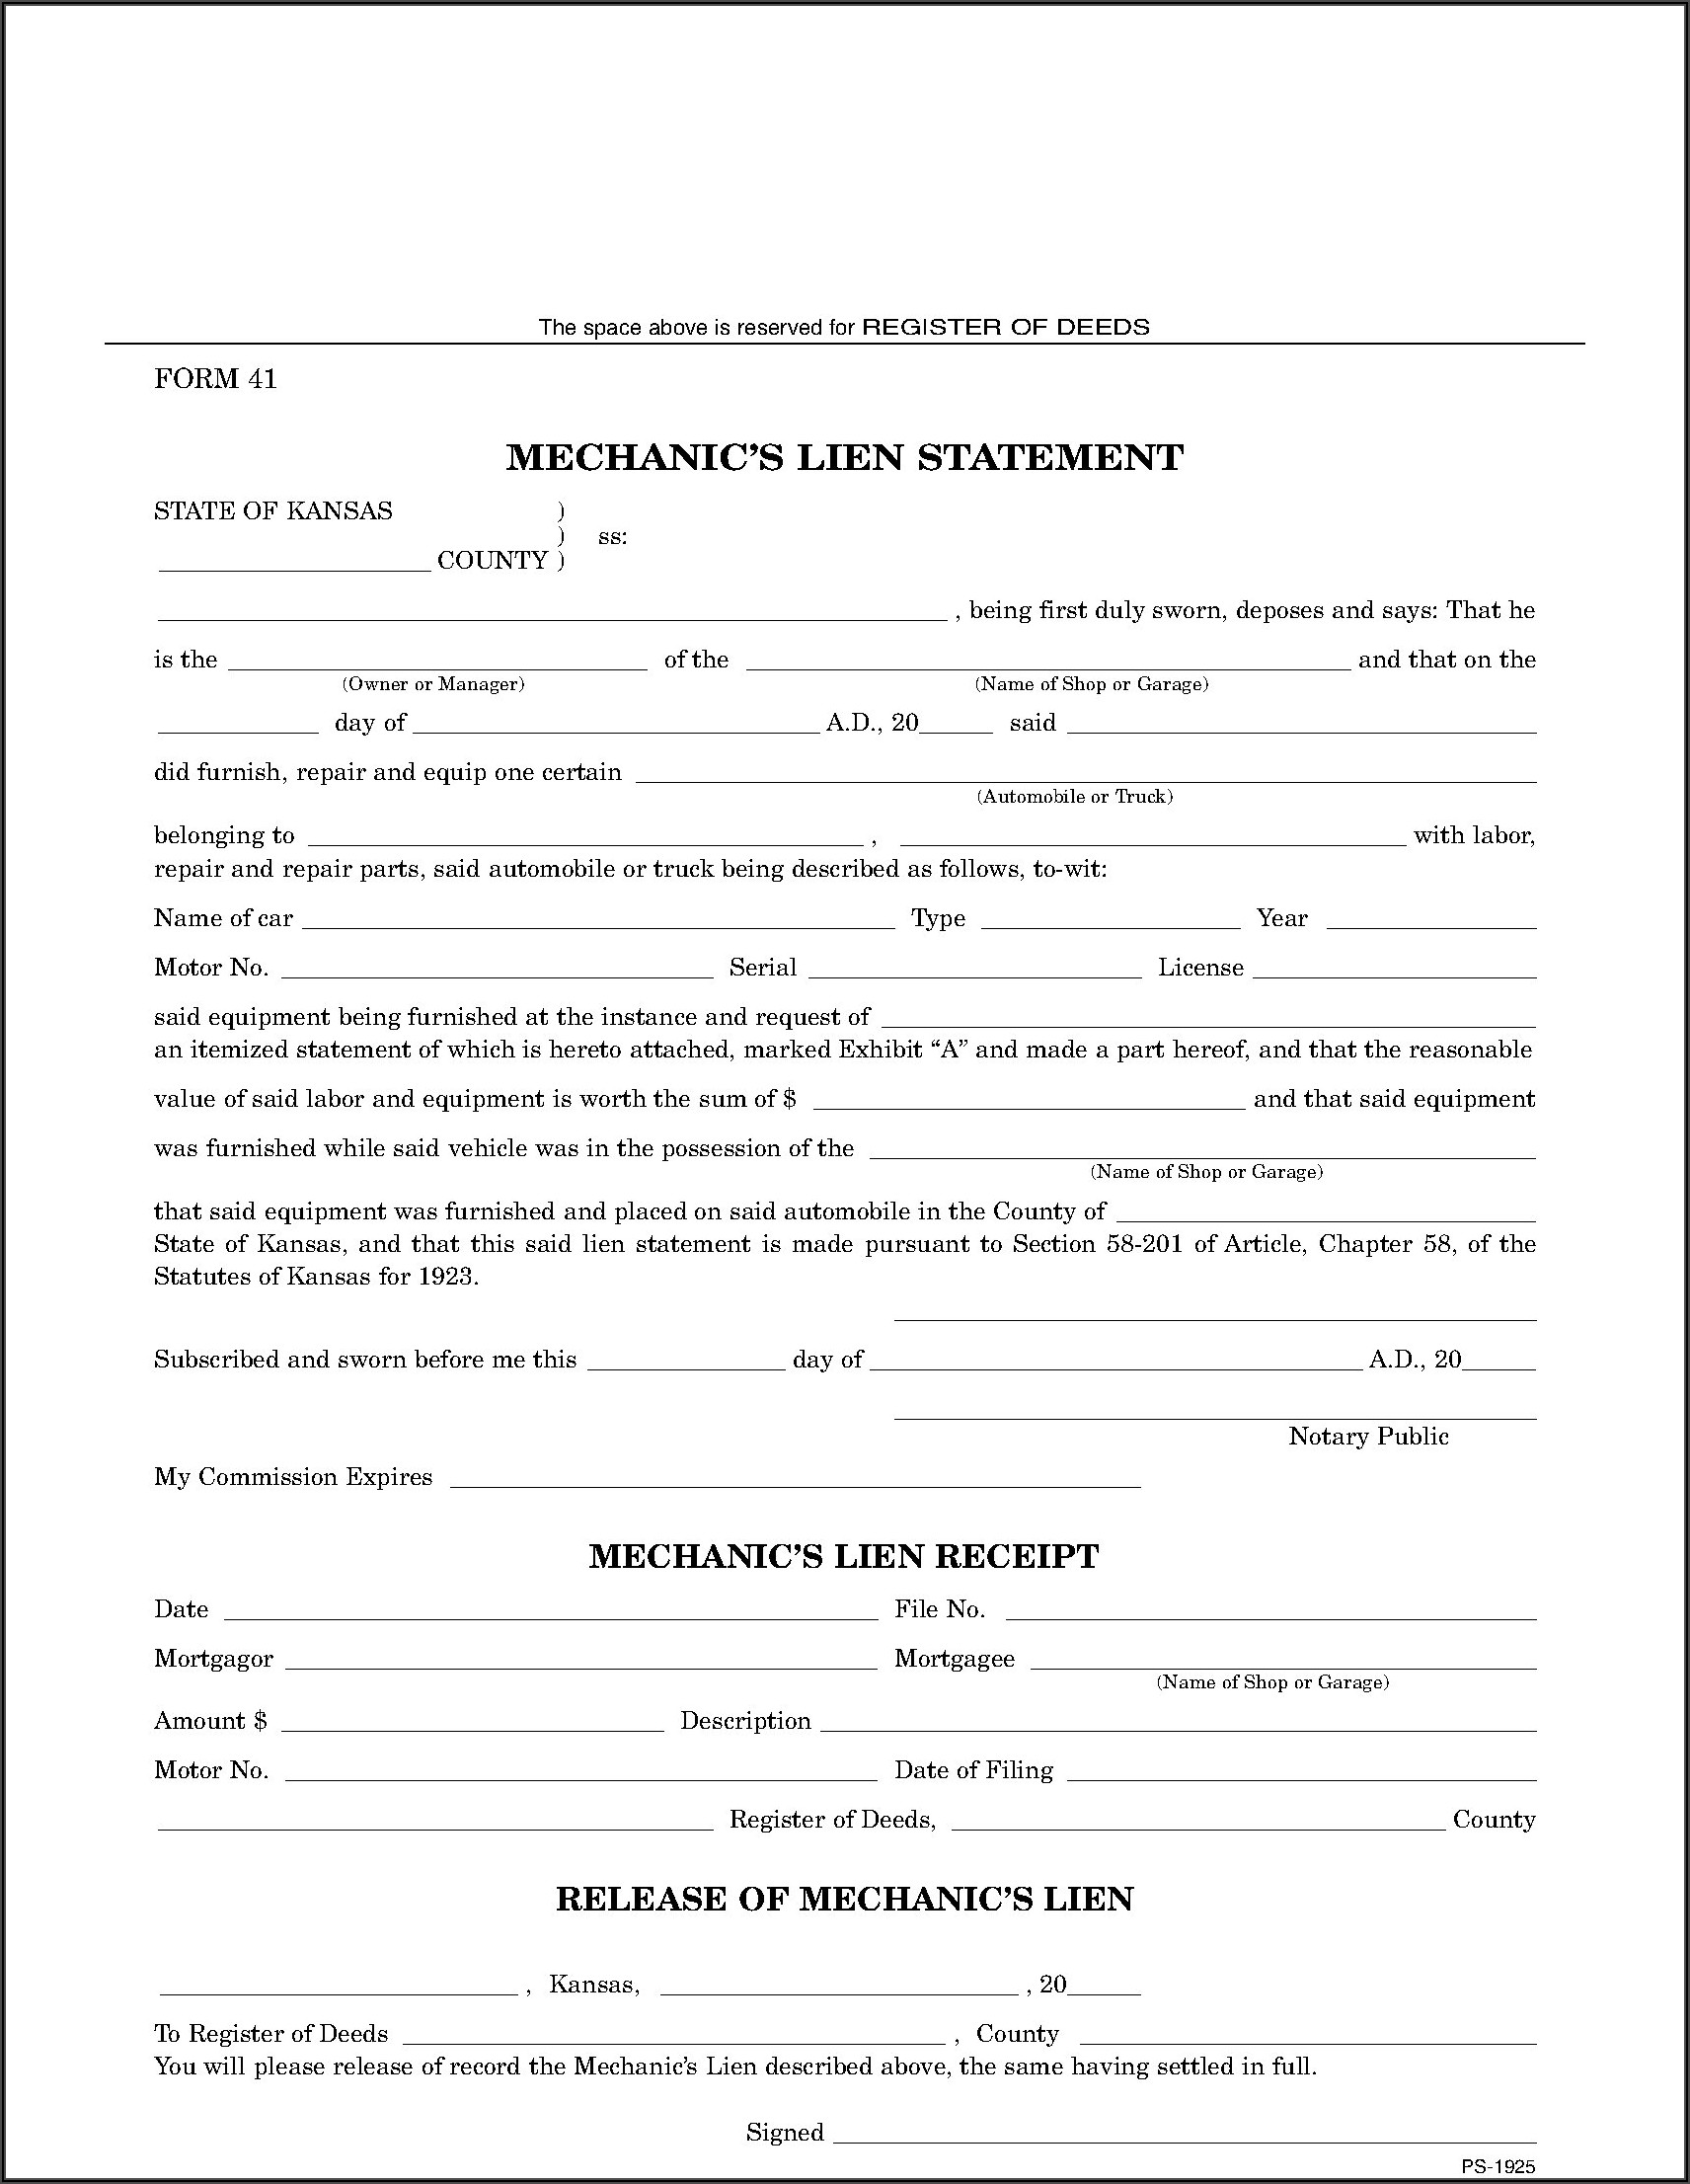 Kansas Mechanic's Lien Release Form